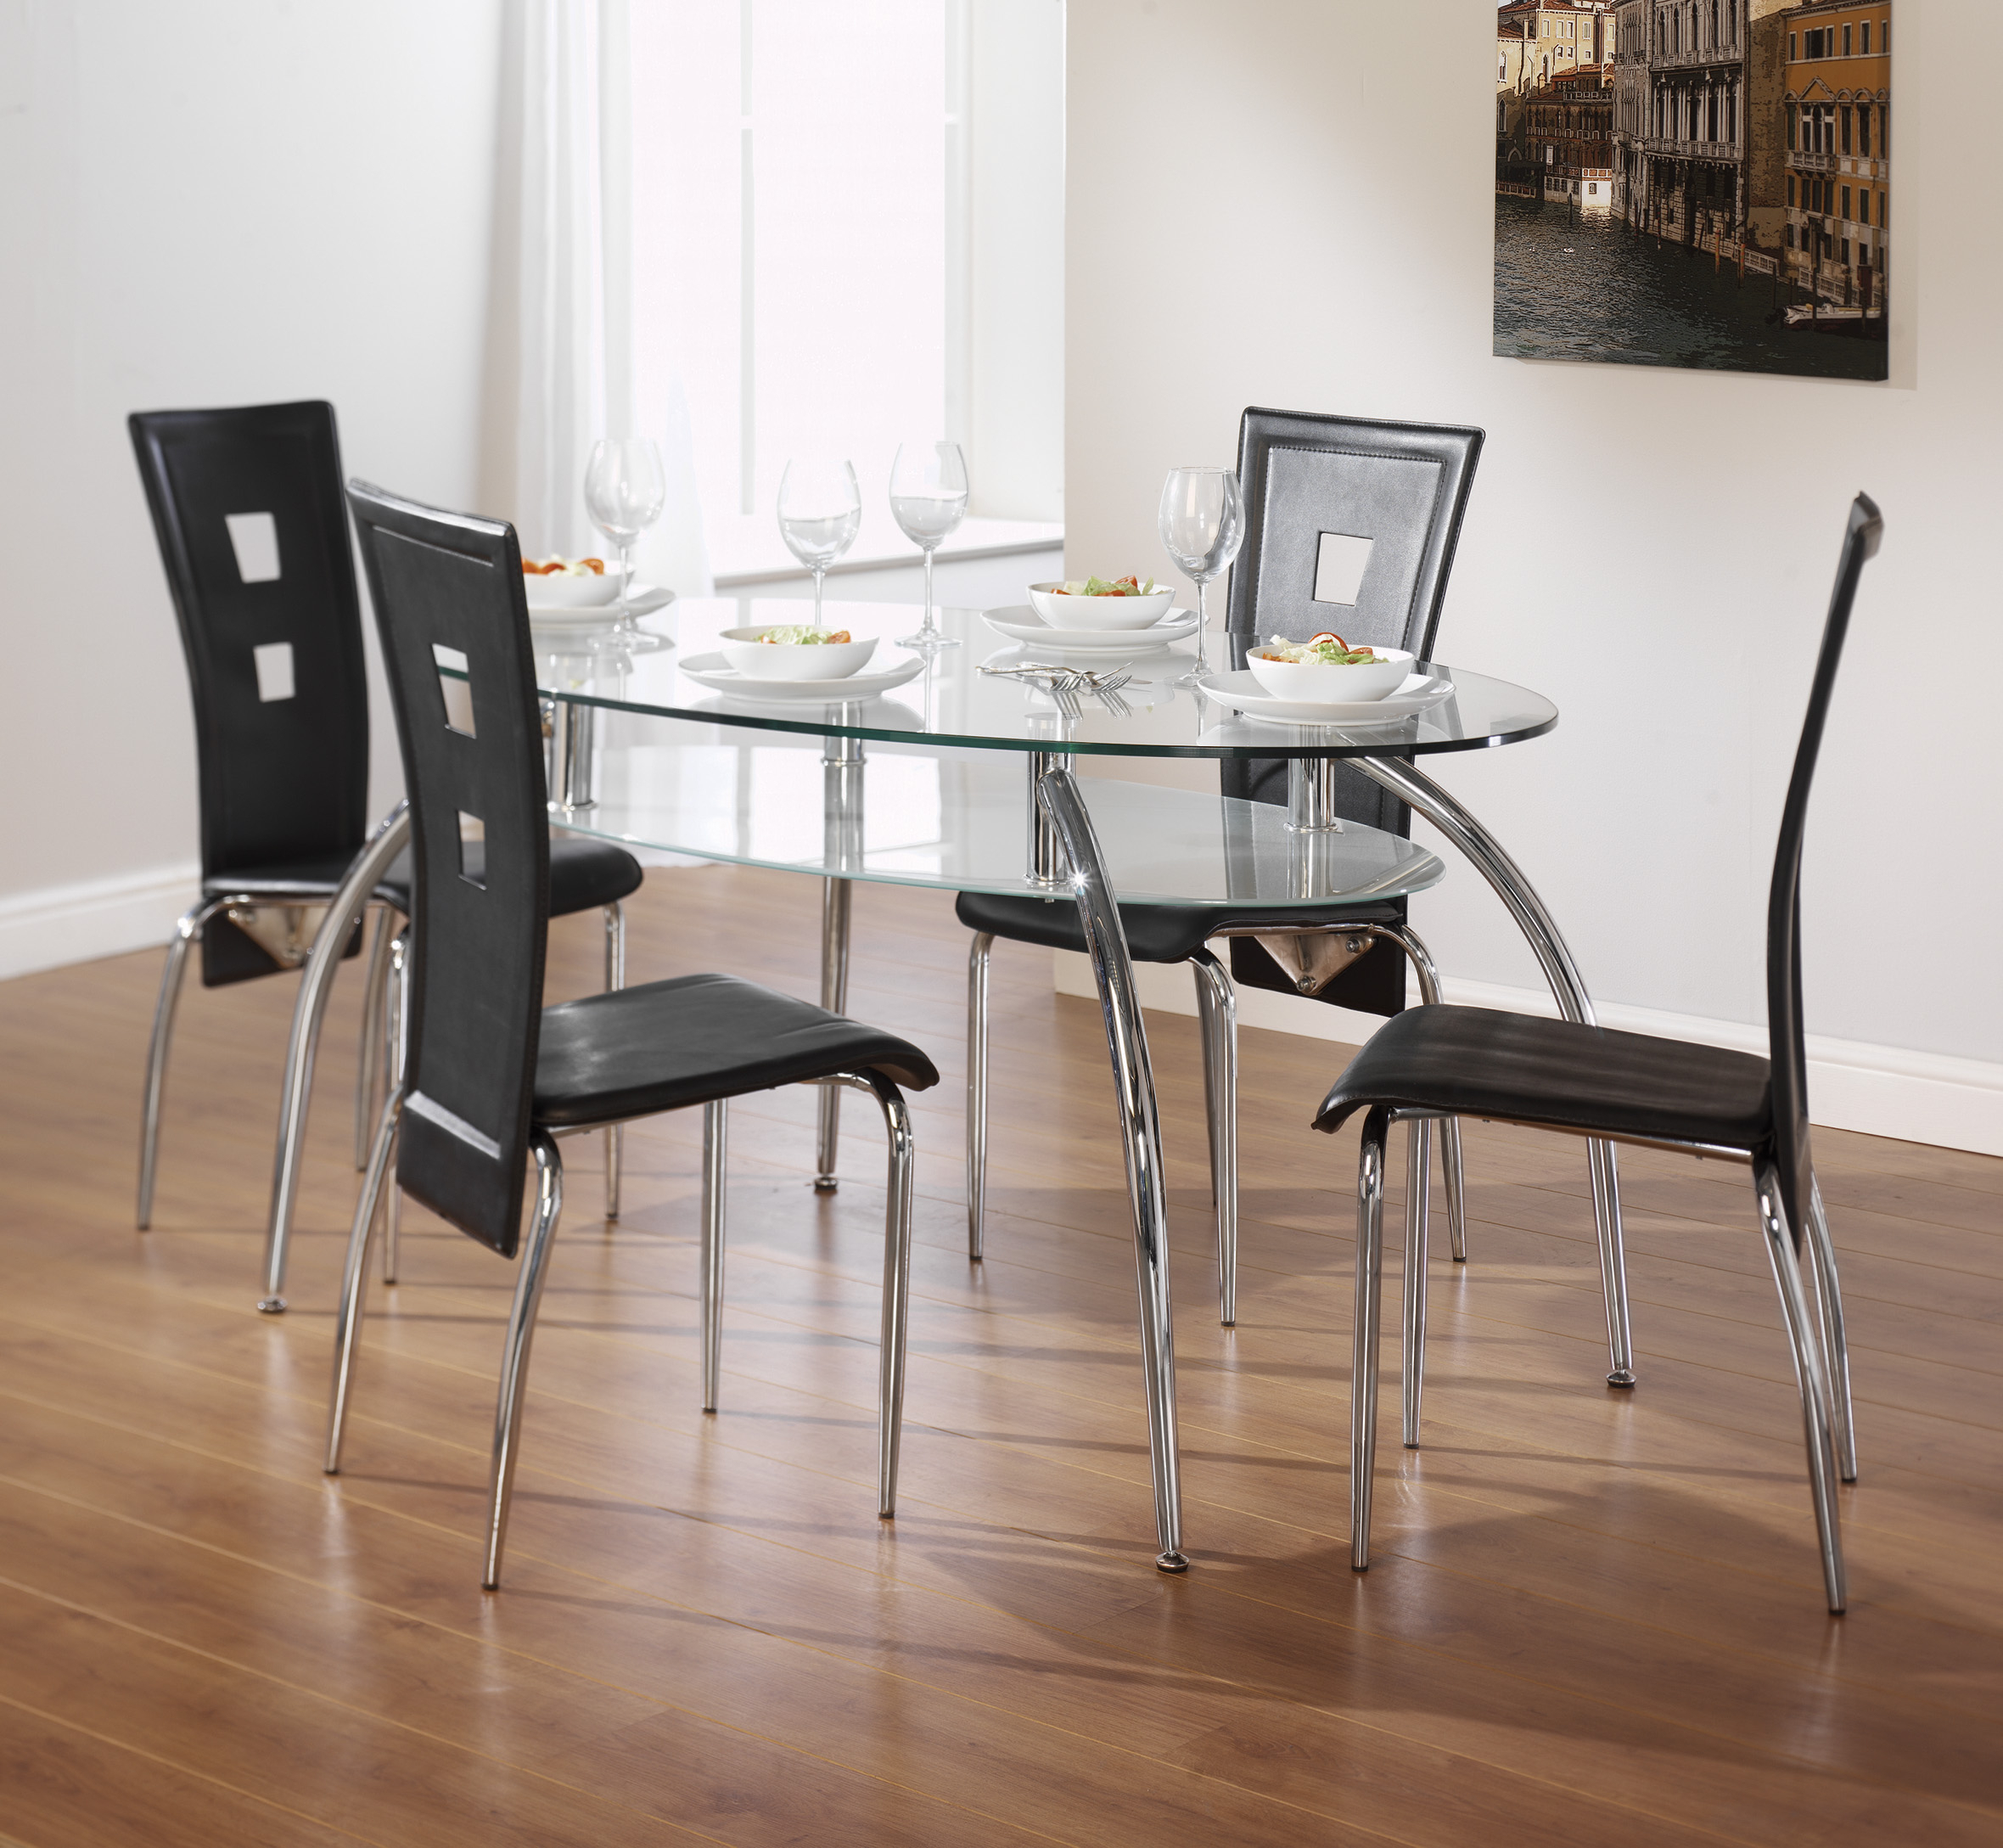 Most Recent Dining Tables At Aintree Liquidation Centre Intended For 4 Seater Round Wooden Dining Tables With Chrome Legs (Gallery 7 of 30)